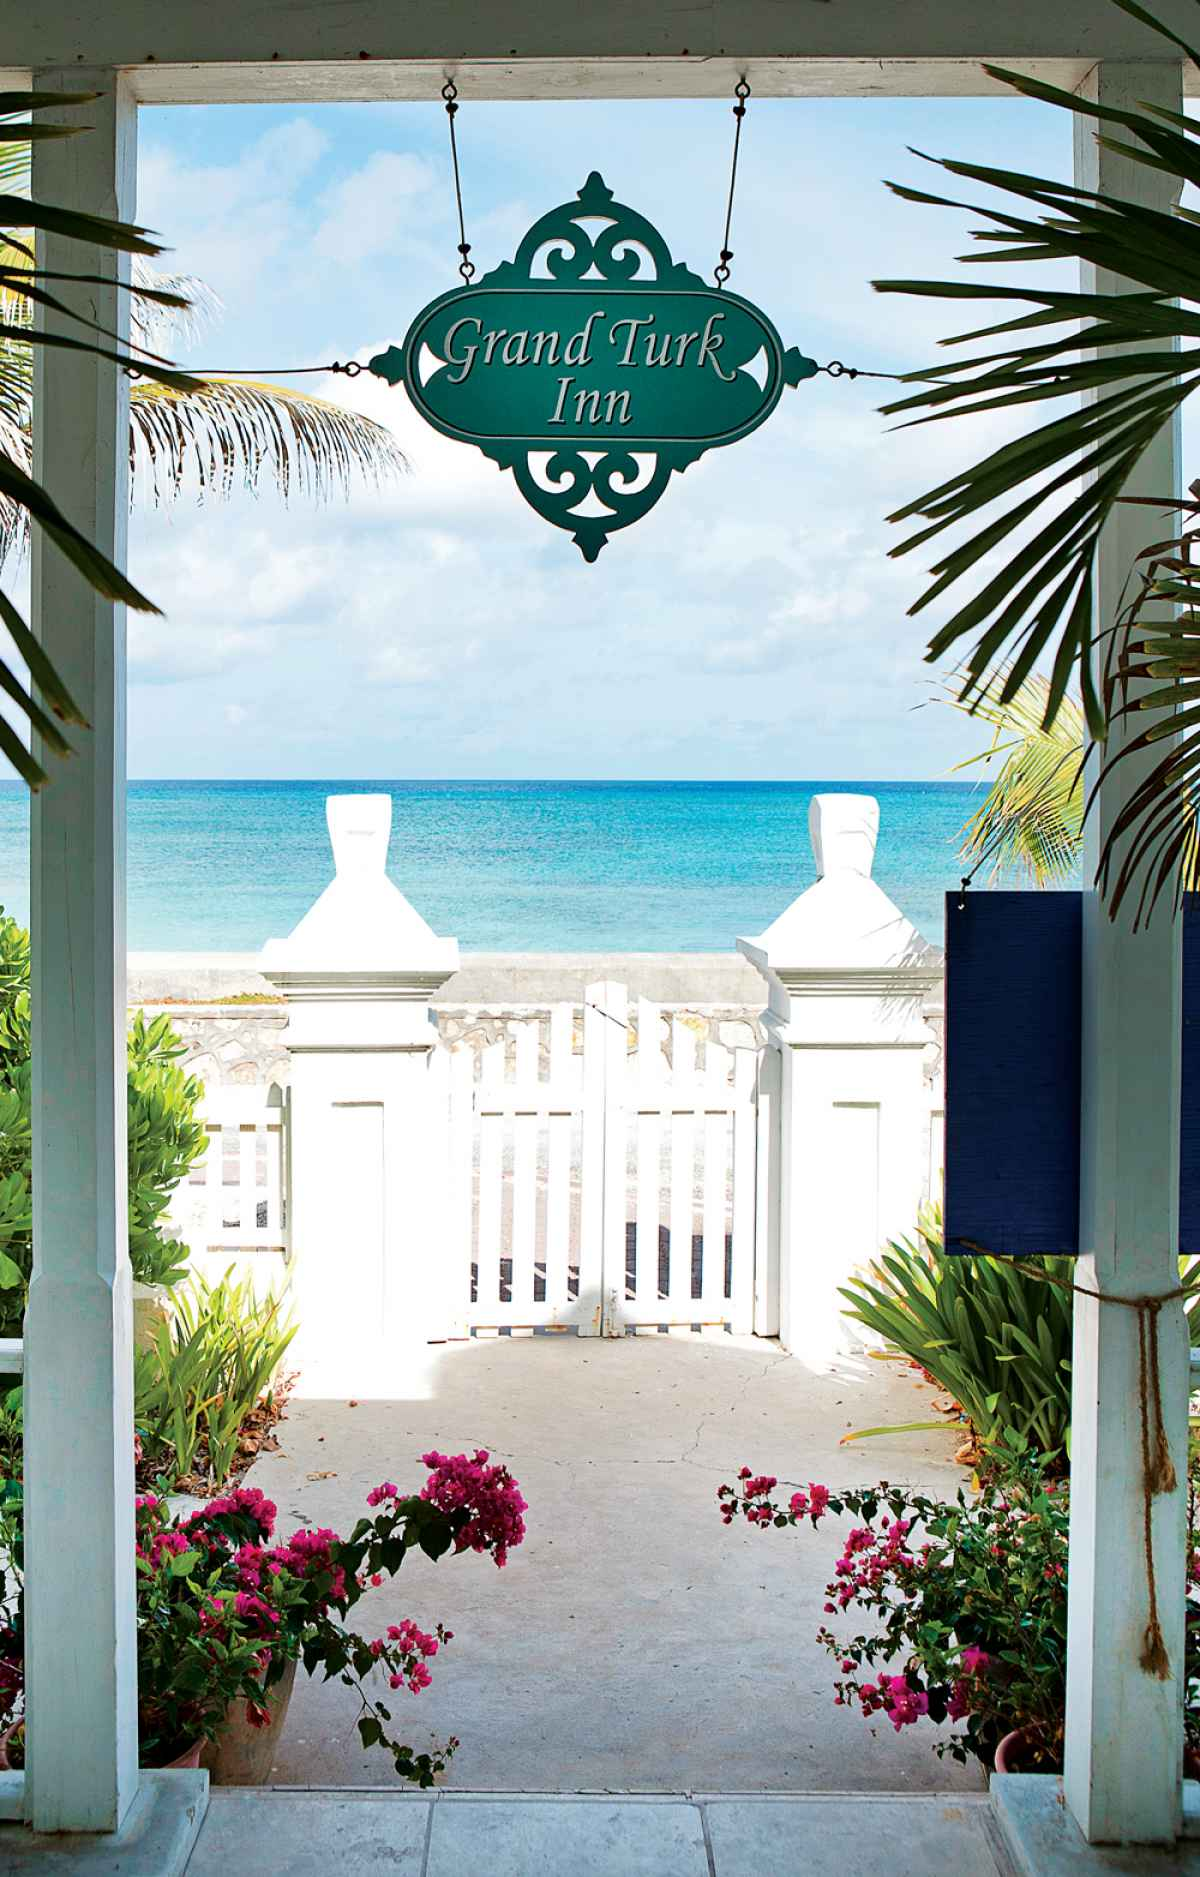 romantic_getaway_resorts_turks_caicos_grand_turk_inn